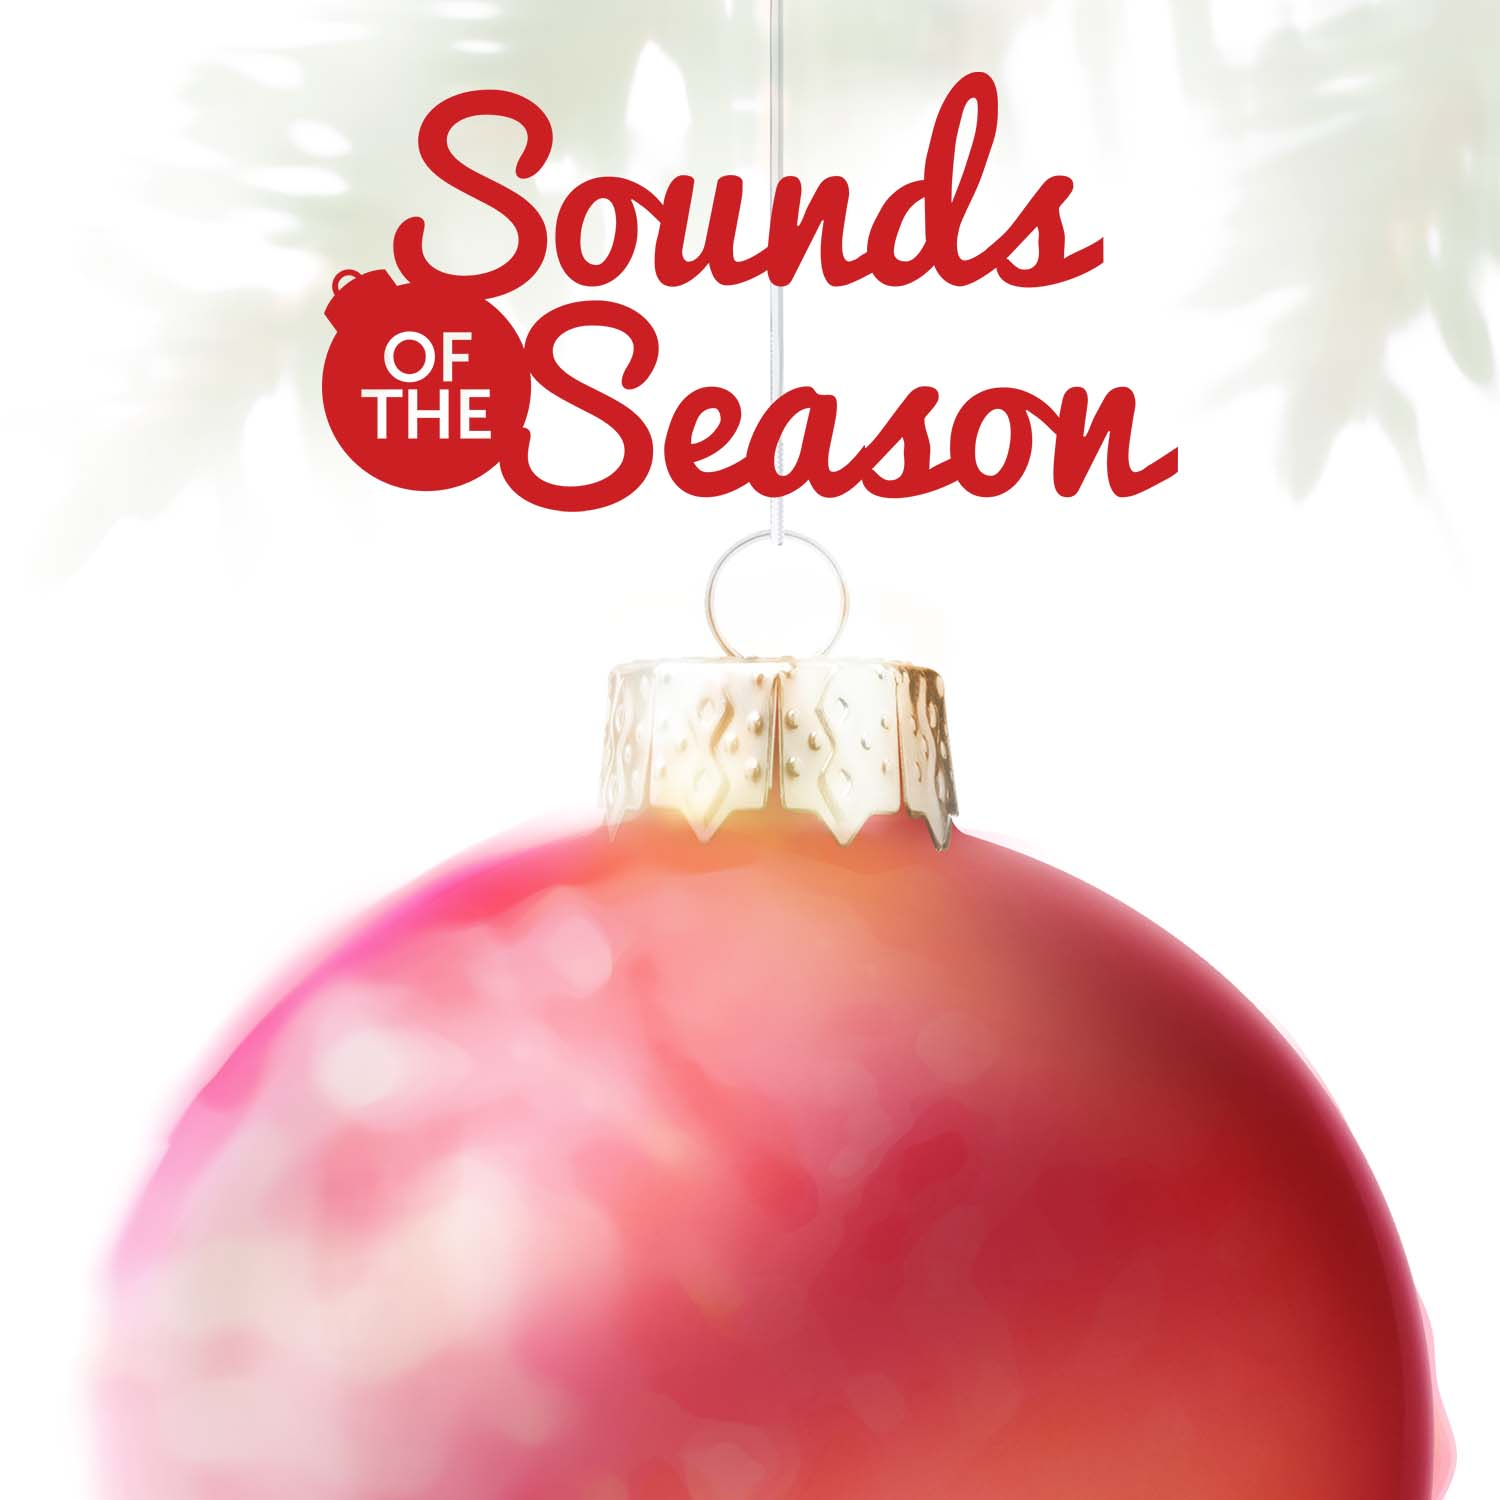 Sounds of the Season Graphic (2016)